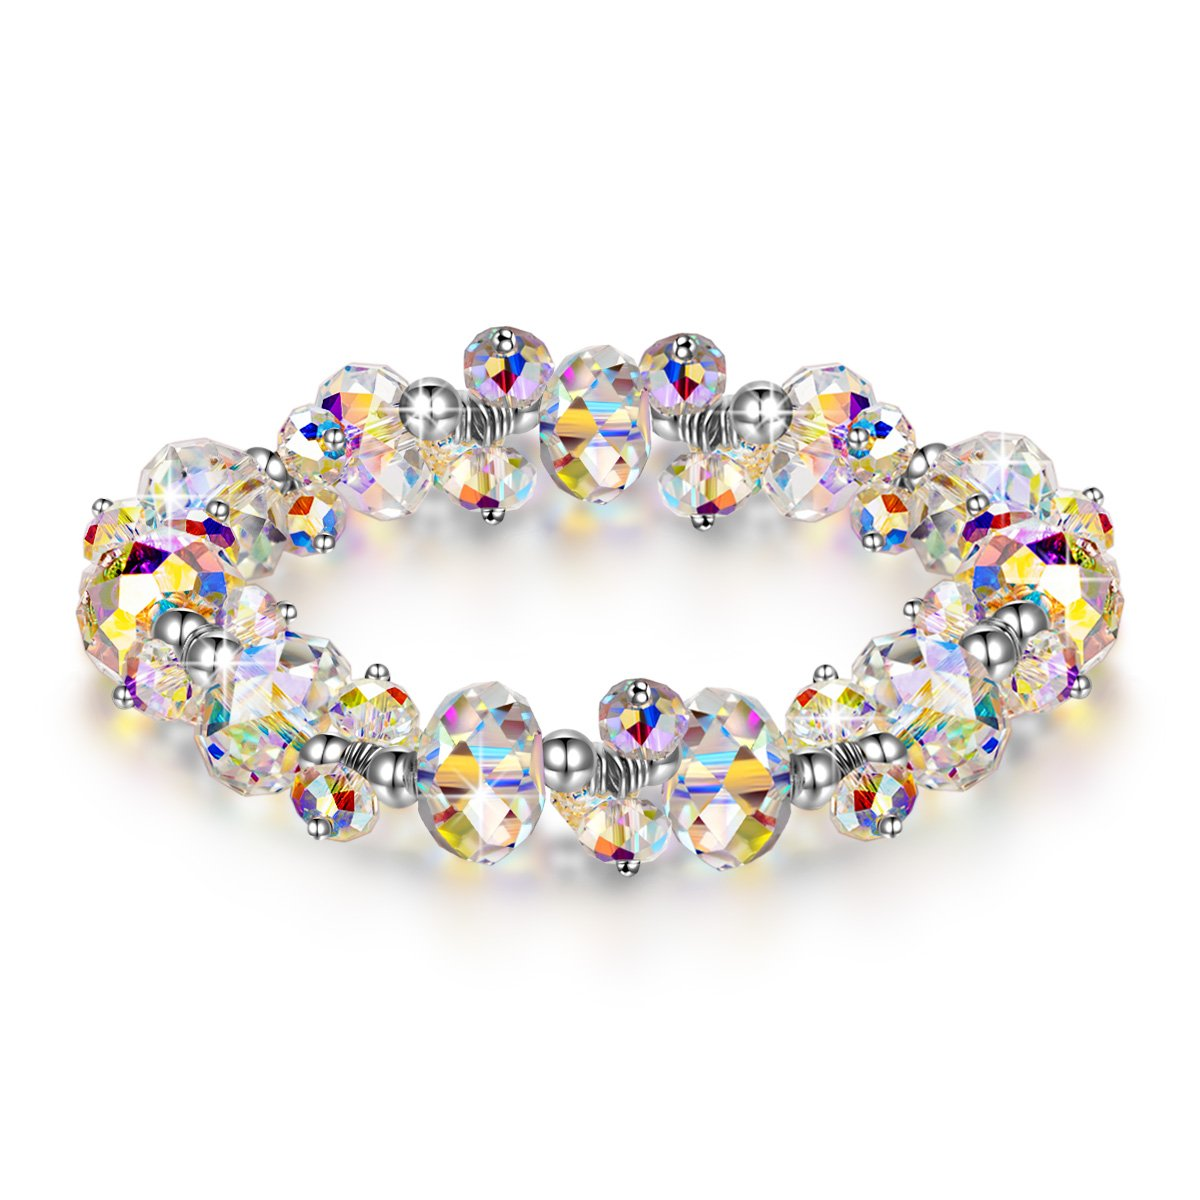 LADY COLOUR Mothers Day Bracelet Gifts Strech Bracelet for Women Colorful Adjustable Bangle with Swarovski Aurore Boreale Crystals Fashion Costume Jewelry Brithday Wife Her Girls Girlfriend Mom Mother